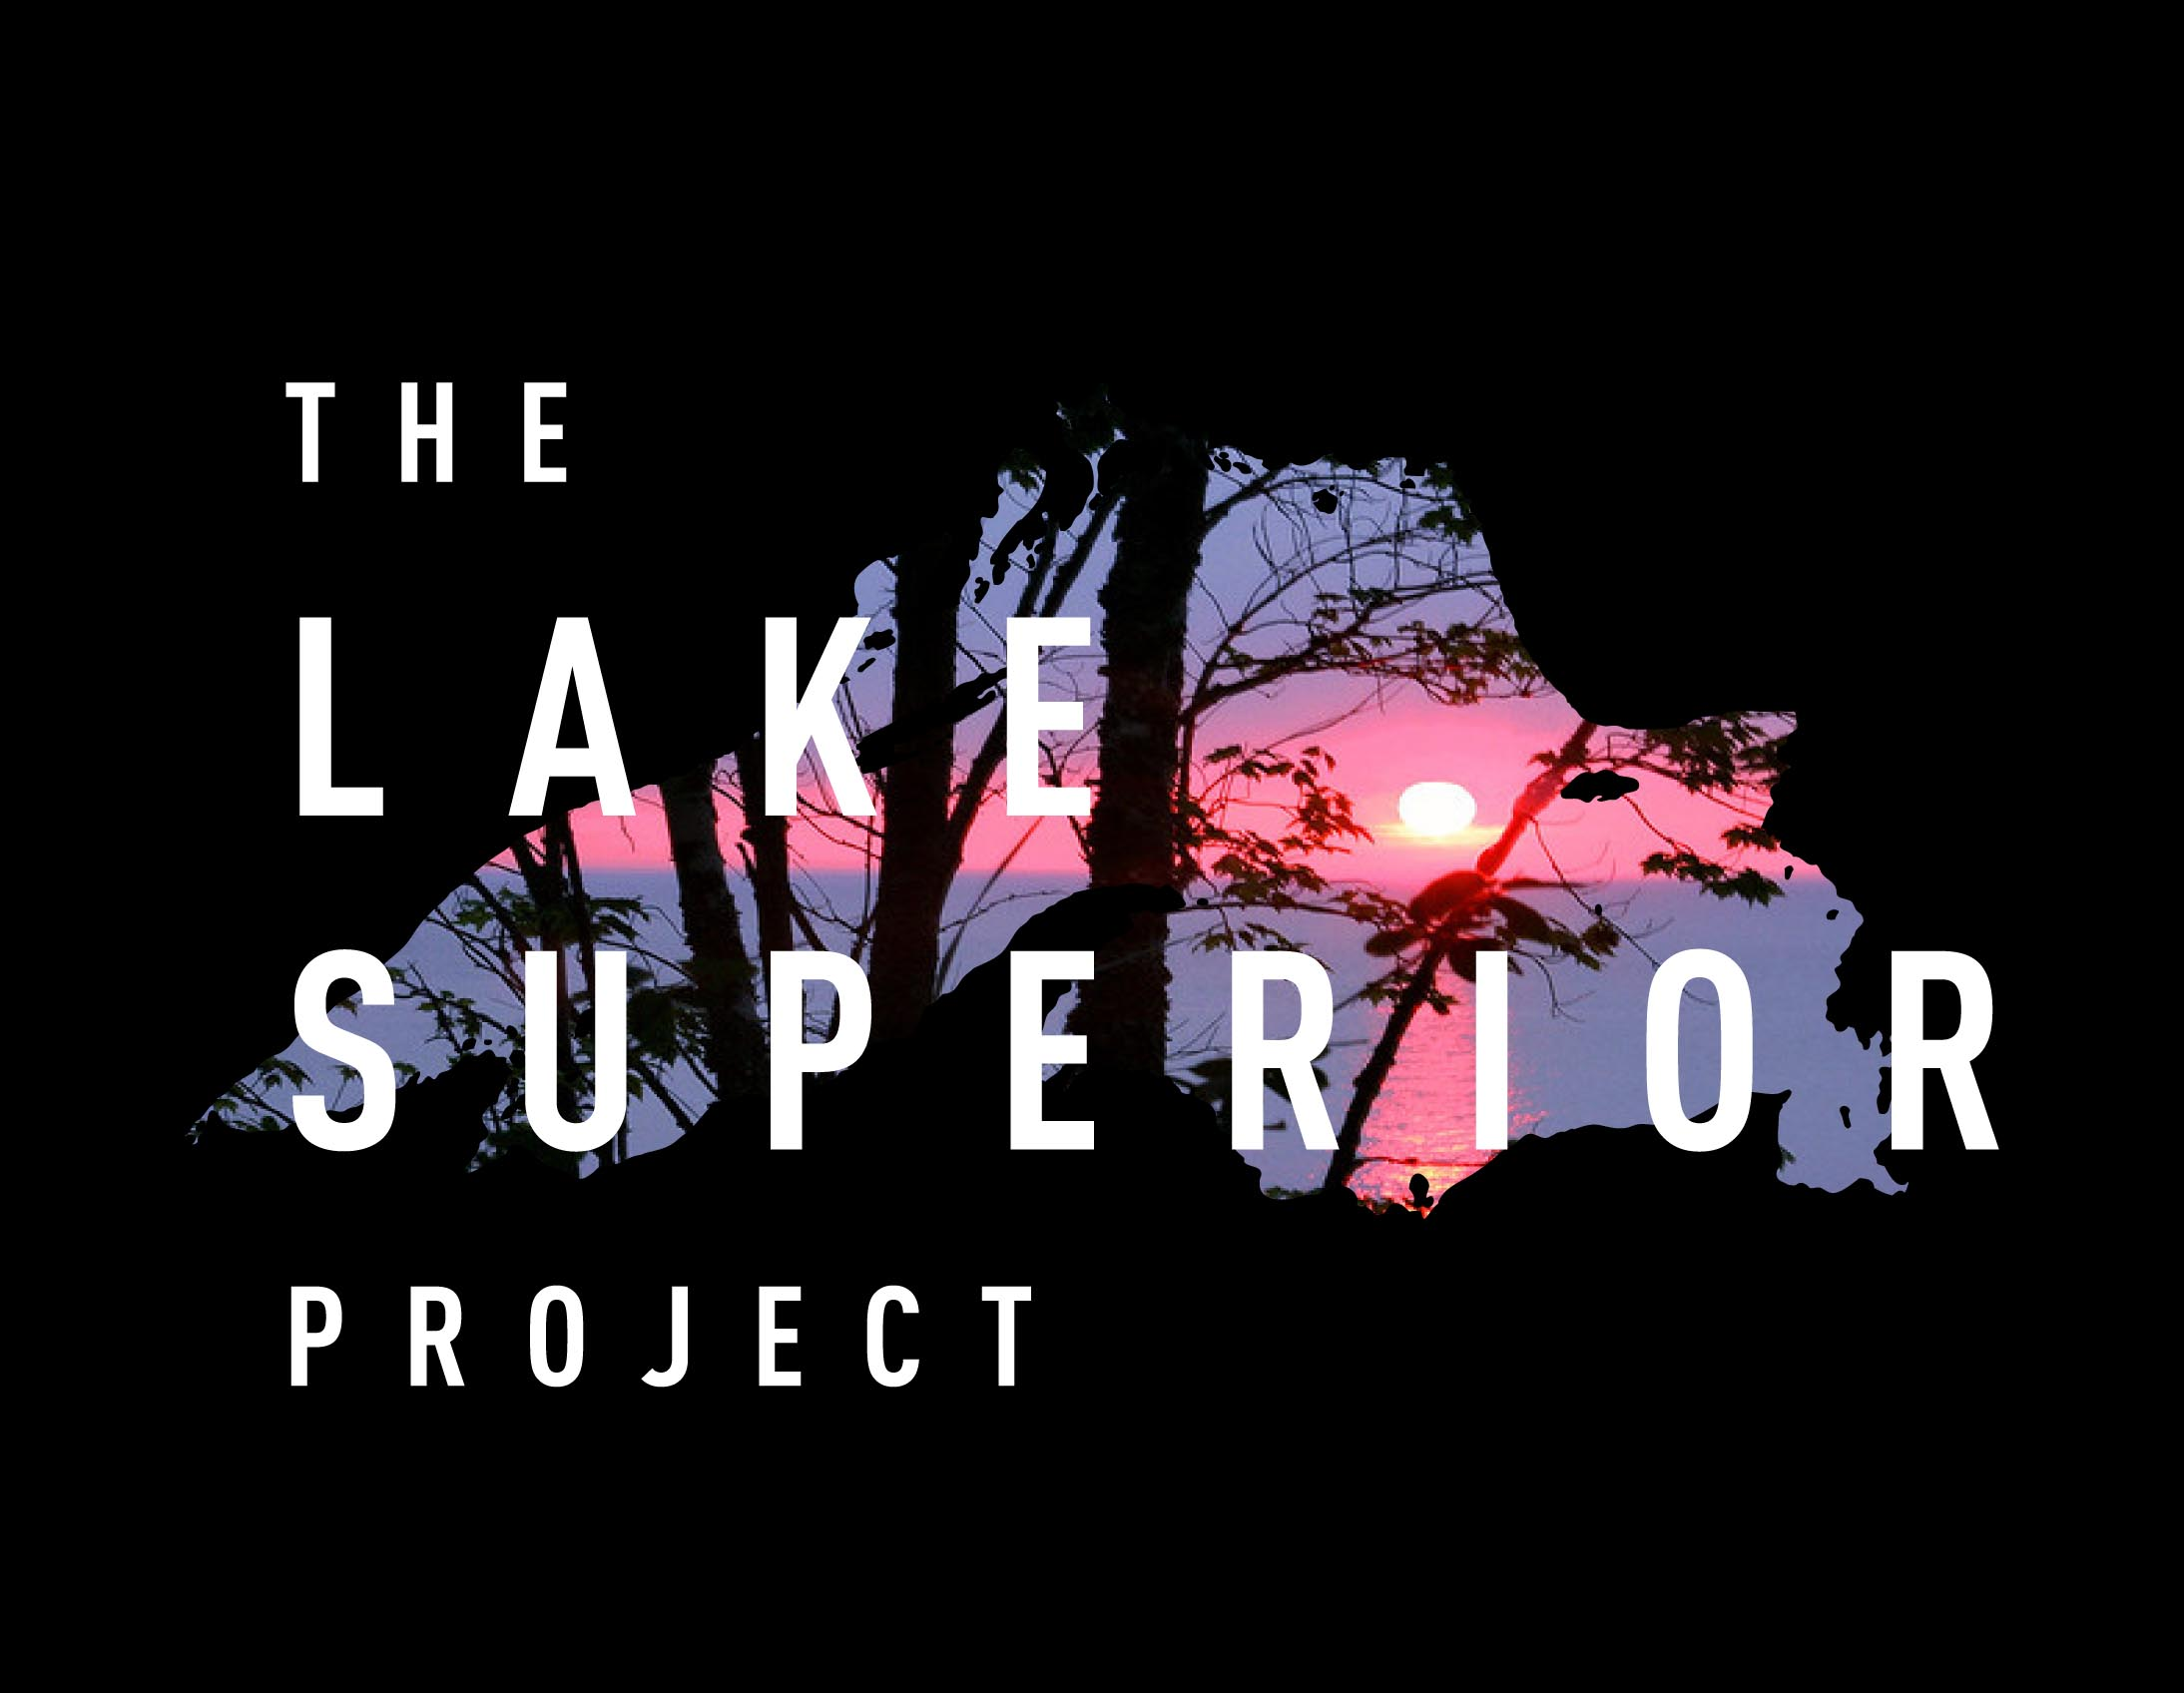 Caption: The Lake Superior Project, Credit: Logo by Lauryl Loberg